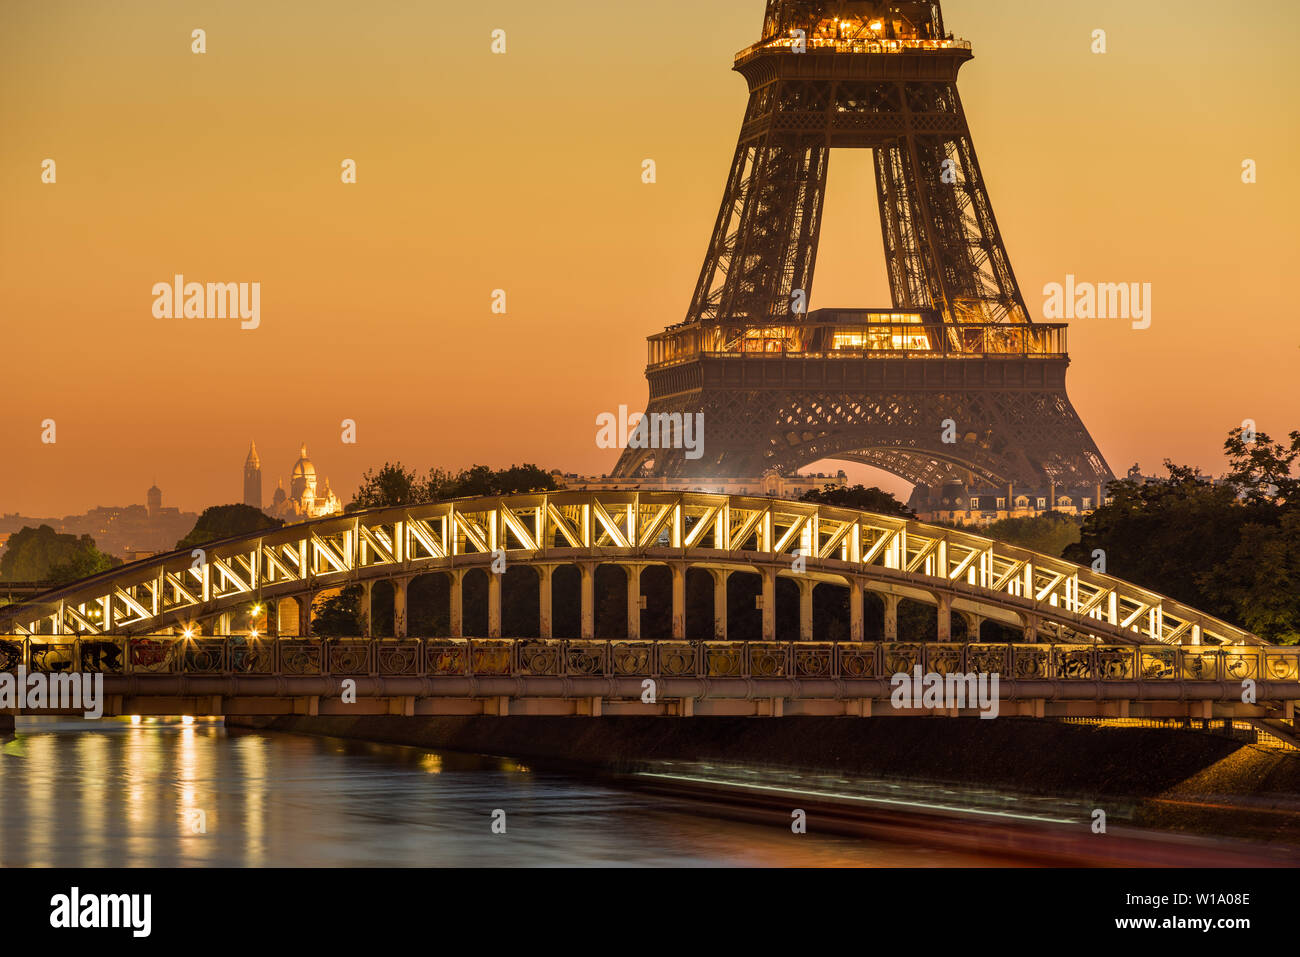 Paris, 75016, FRANCE: Eiffel Tower and Rouelle Bridge at Sunrise with the Basilica of the Sacre Coeur in the distance. Ile-aux-Cygne Stock Photo